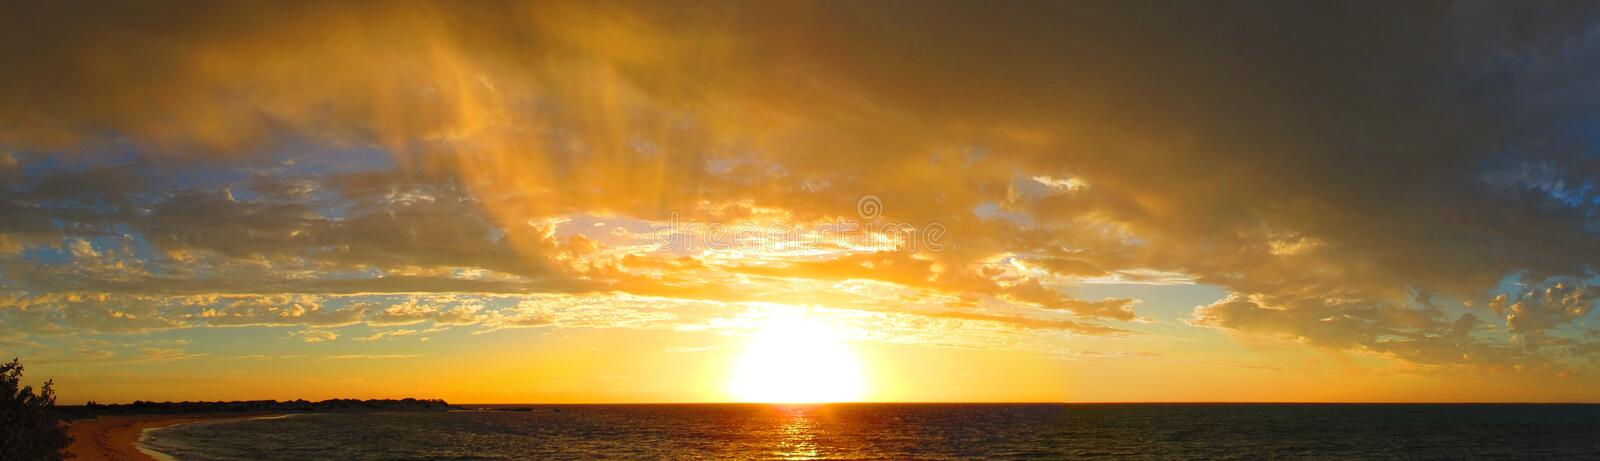 Sunset at Cape Range National Park, Western Australia royalty free stock images